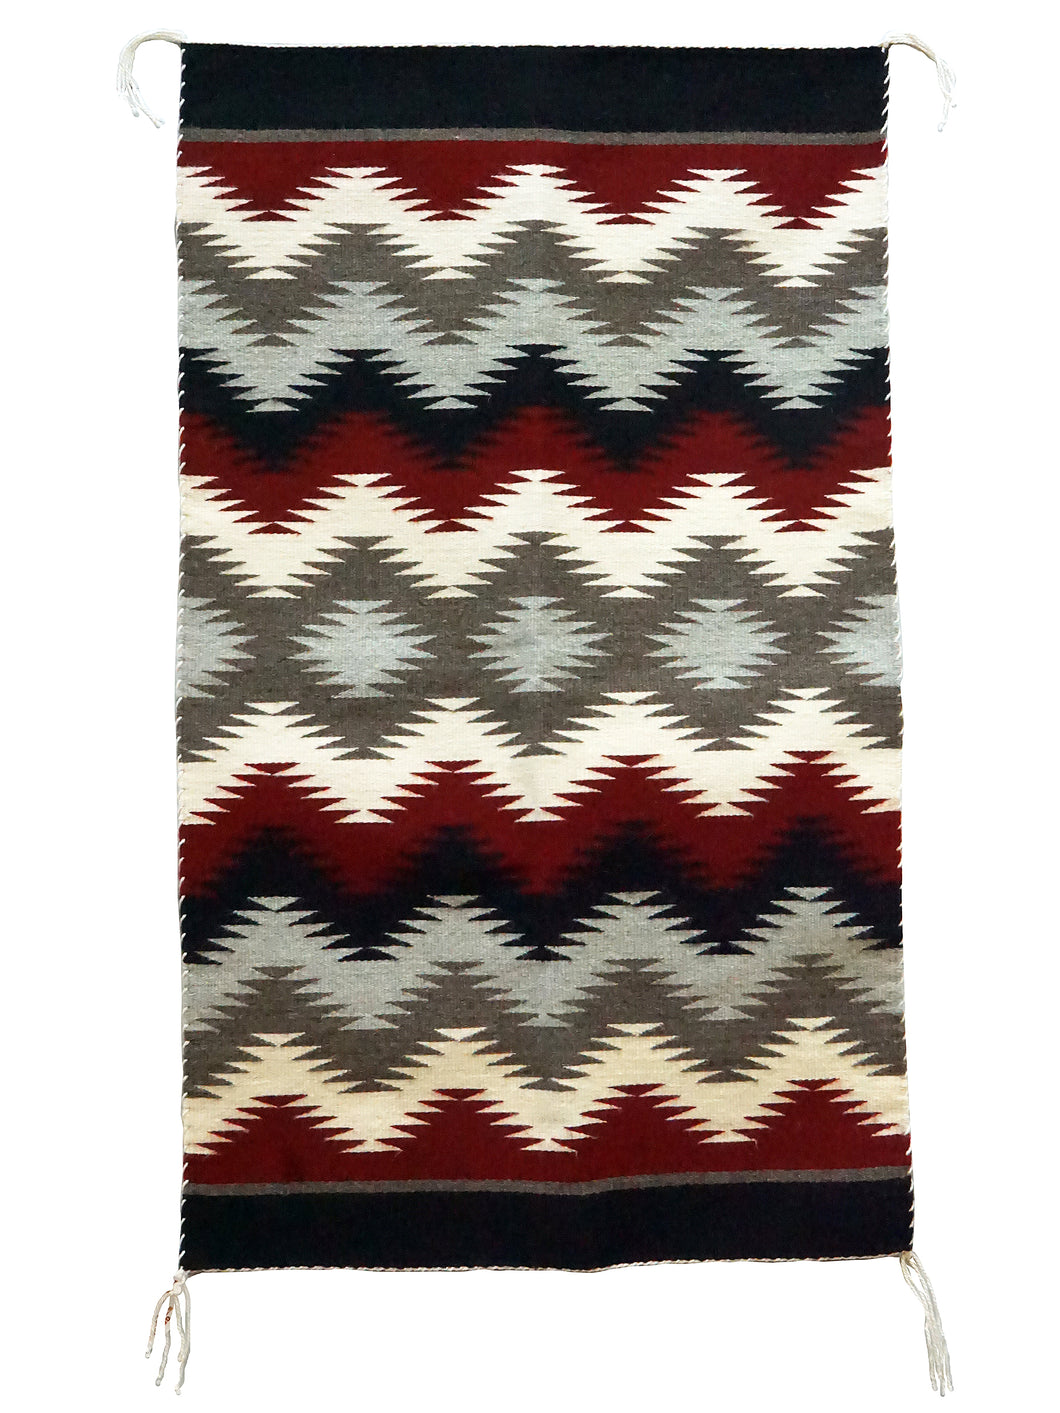 Millie White, Eye Dazzler, Navajo Rug, Black, Red, Gray, Handwoven, 44